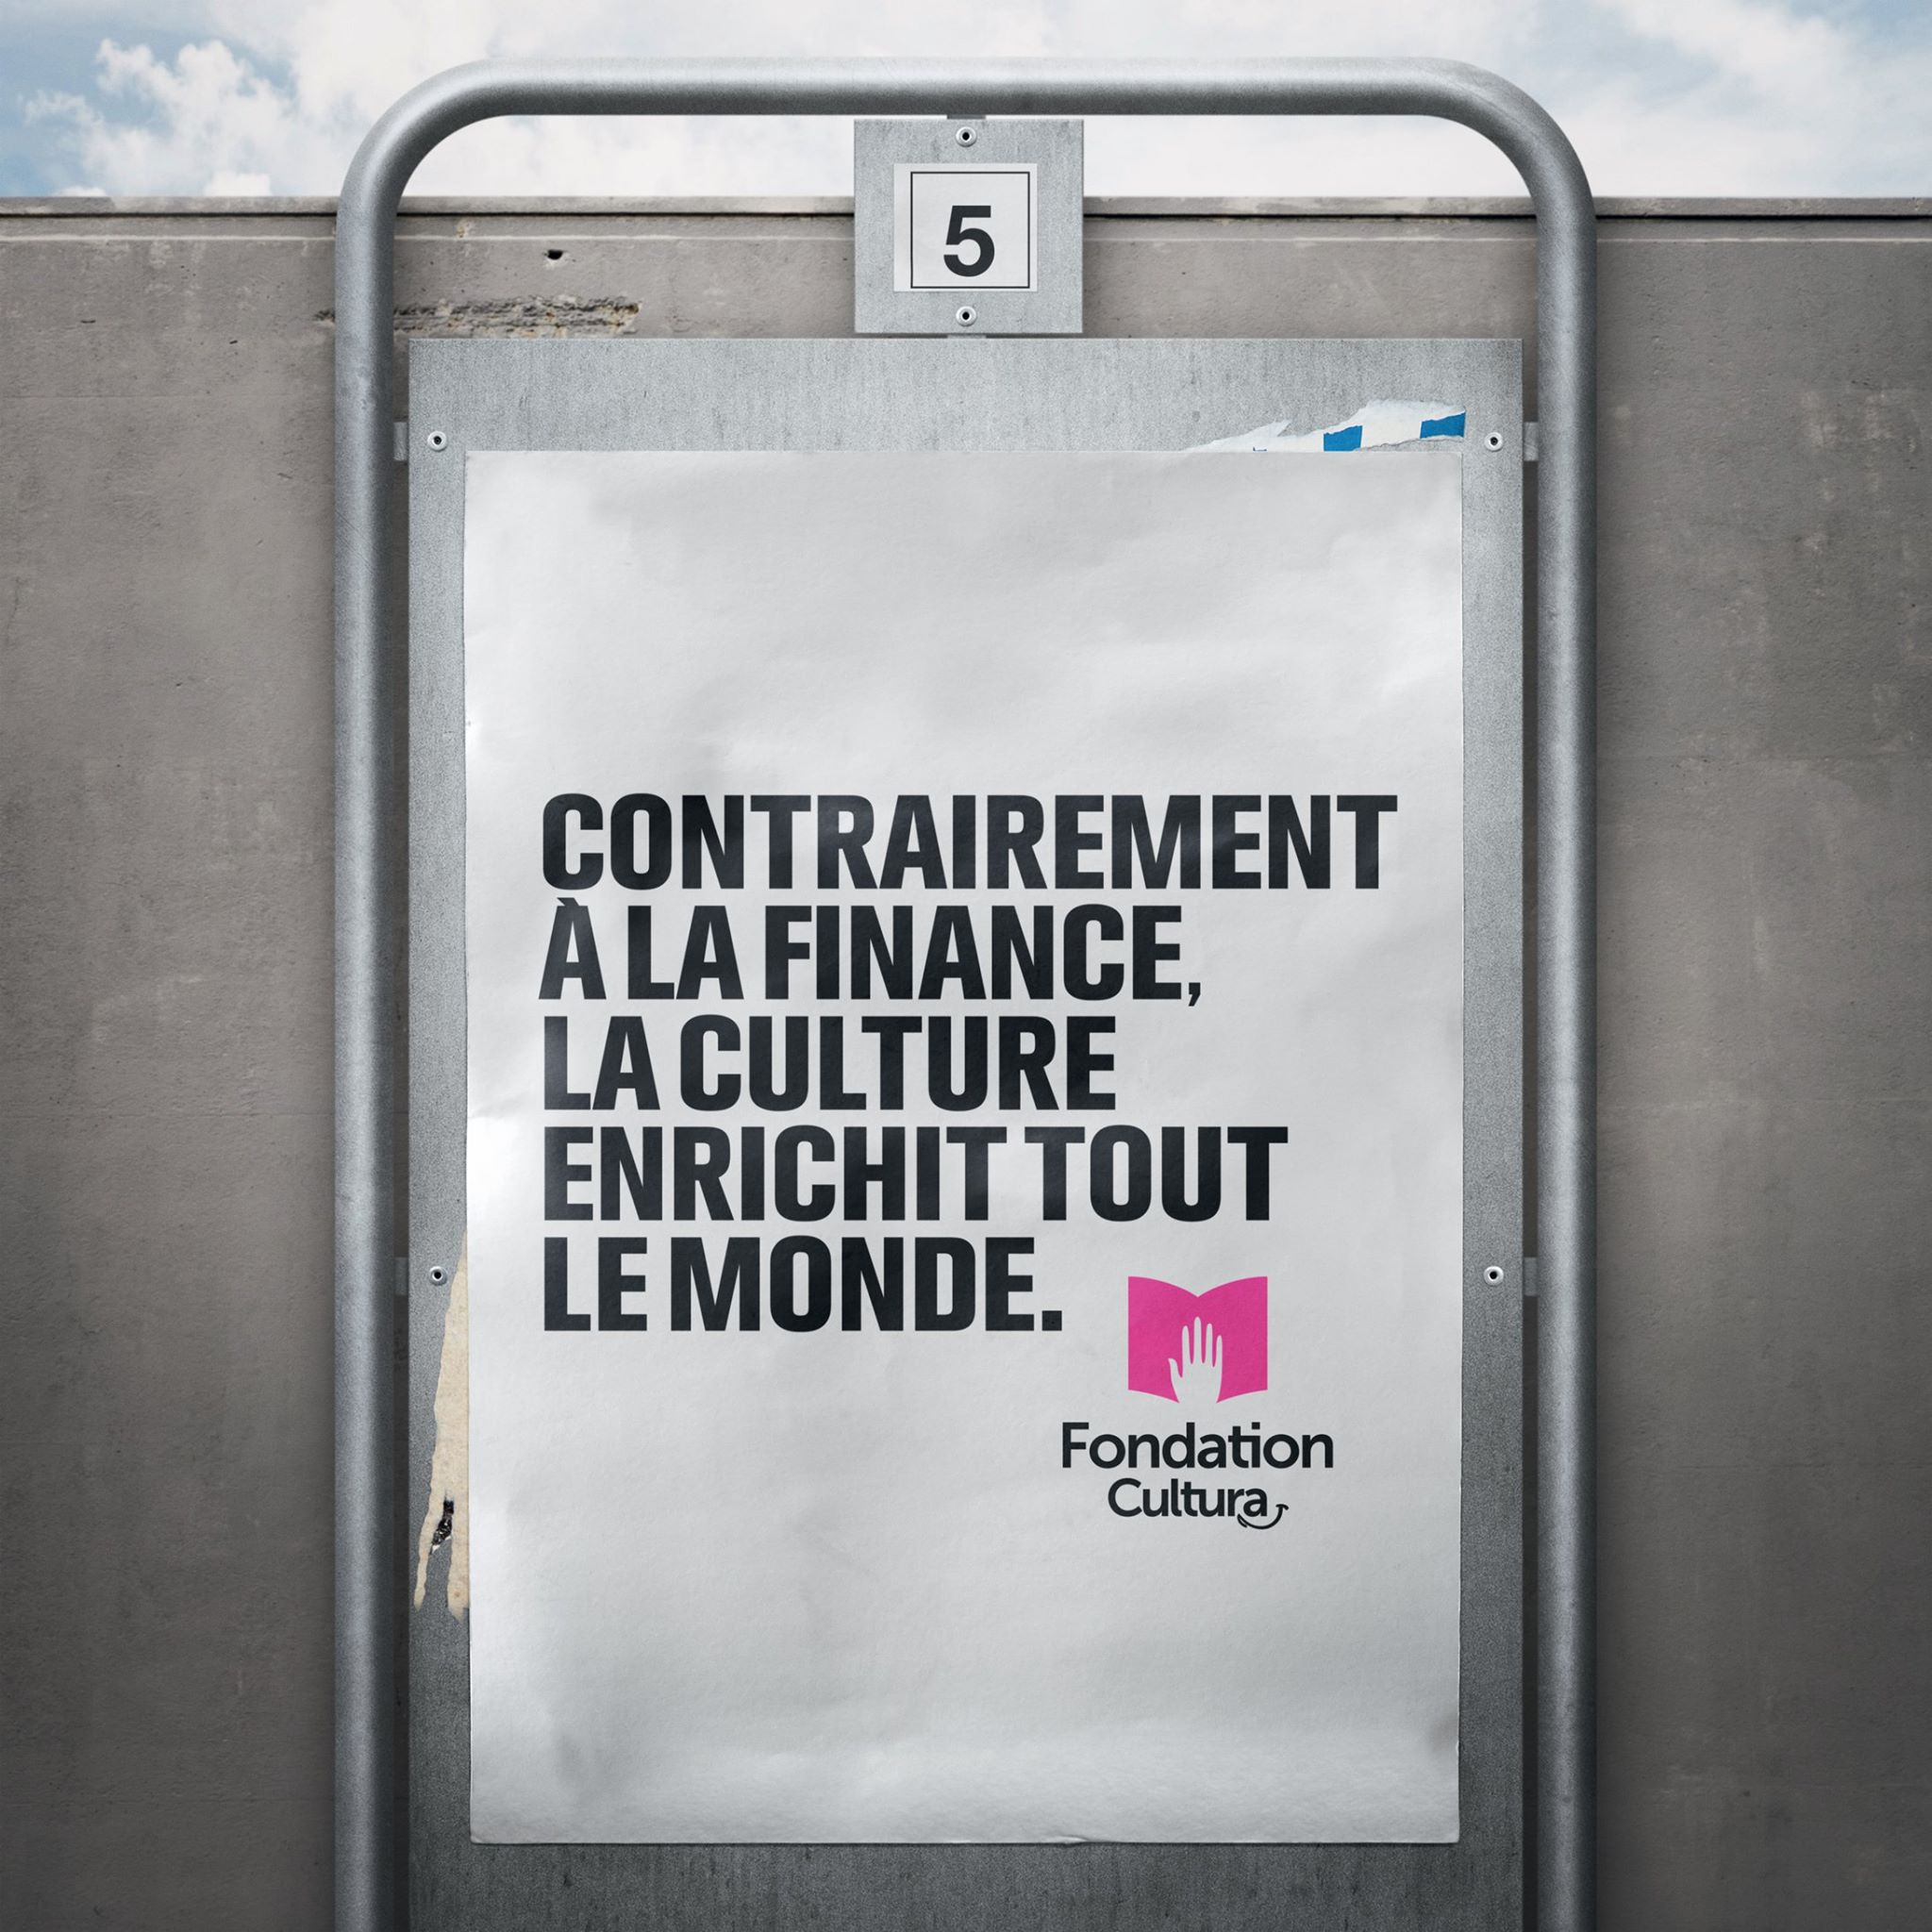 fondation-cultura-publicite-communication-affiche-la-culture-presidentielle-2017-candidats-agence-st-johns-4